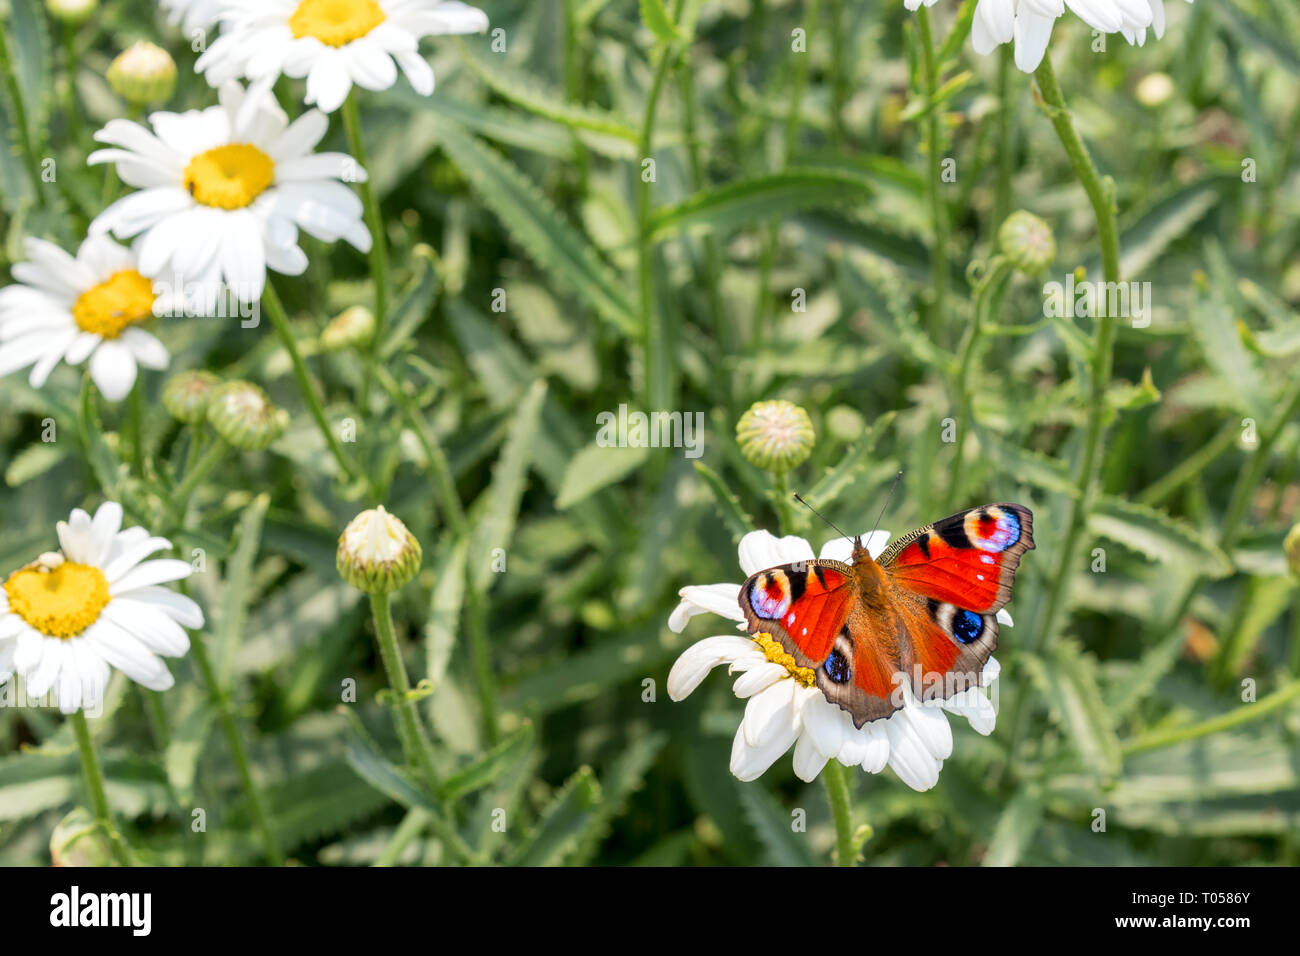 the European peacock butterfly sitting on the white  chamomilla flower petals. close up, macro. - Stock Image